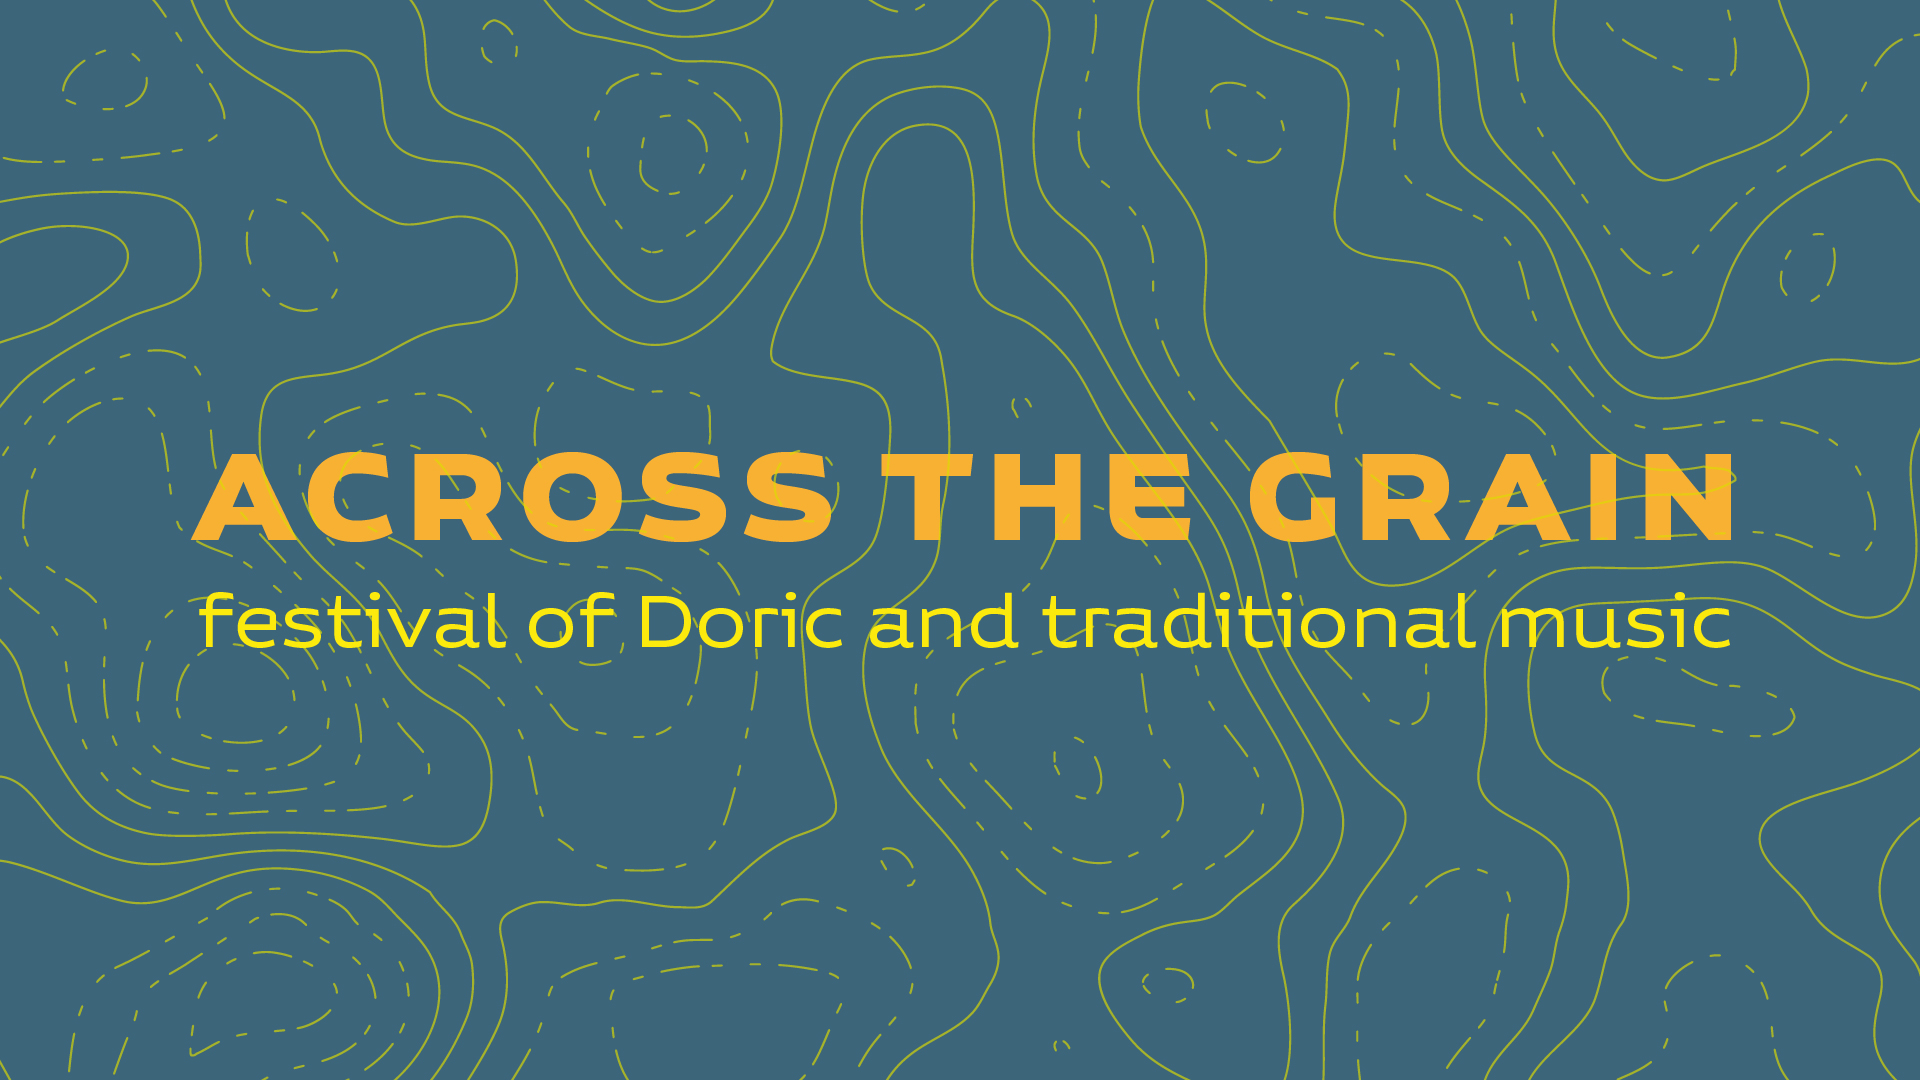 'Across the Grain logo with wording - festival of Doric and traditional music